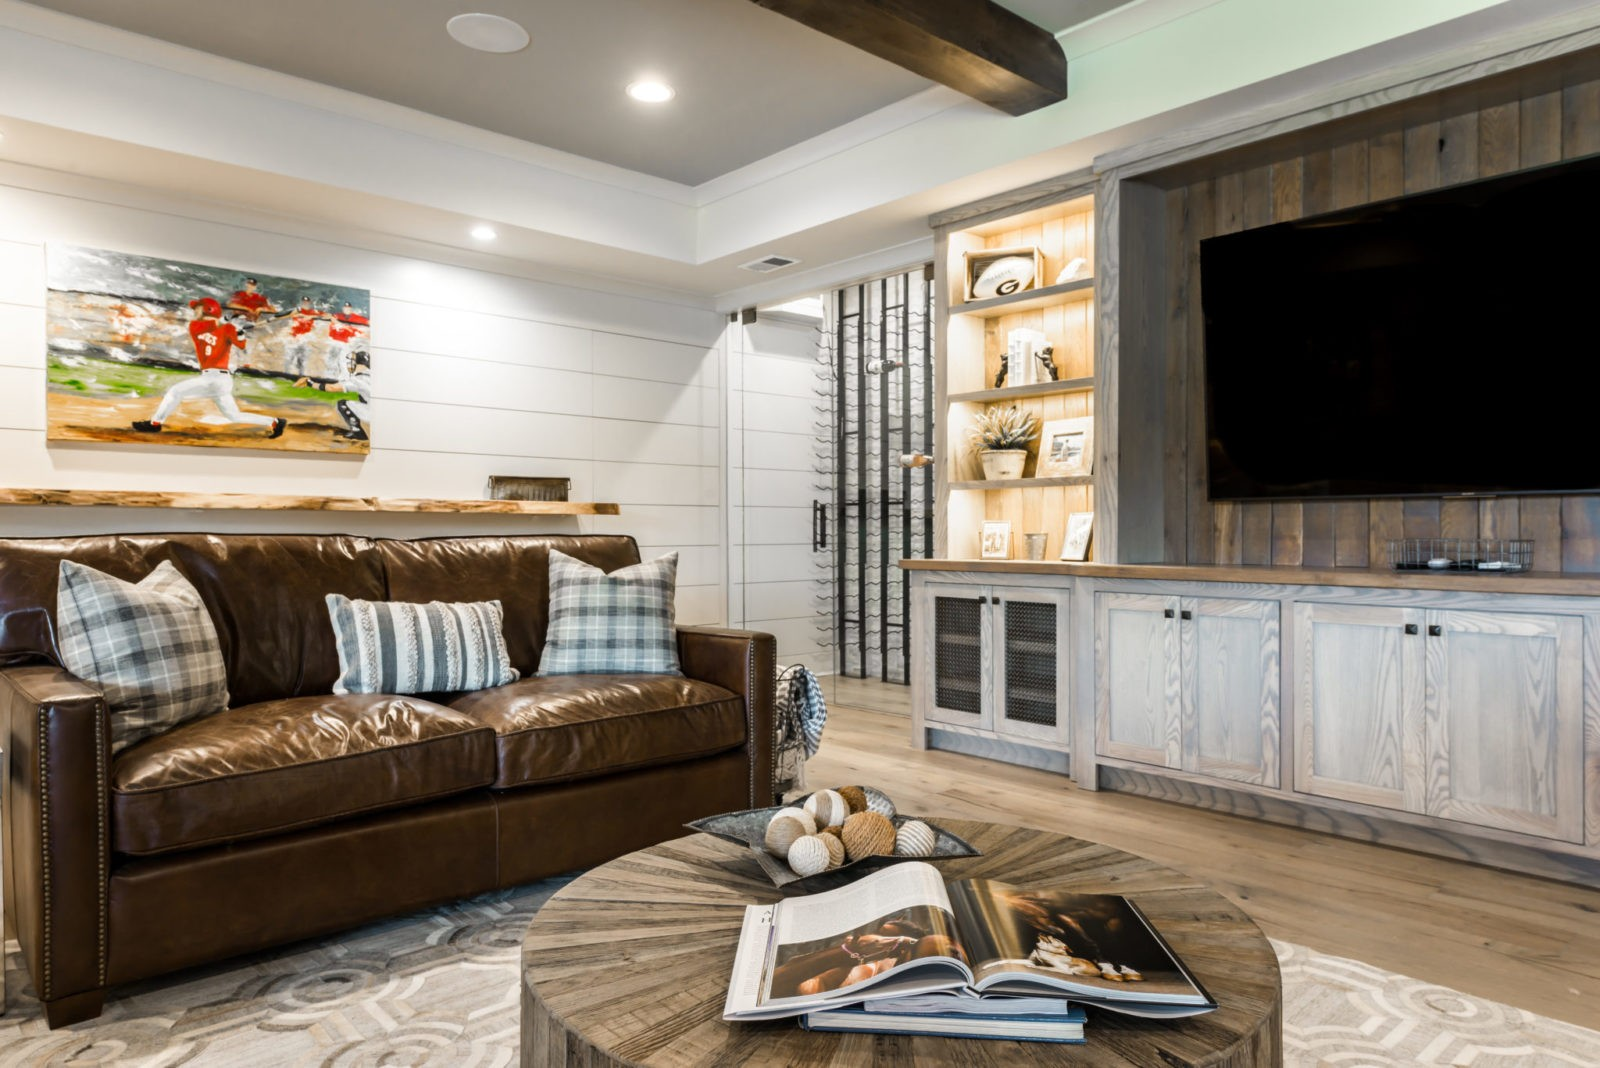 Custom shiplap walls Exposed rustic pine beams TV Cabinet custom with pickled ash stain